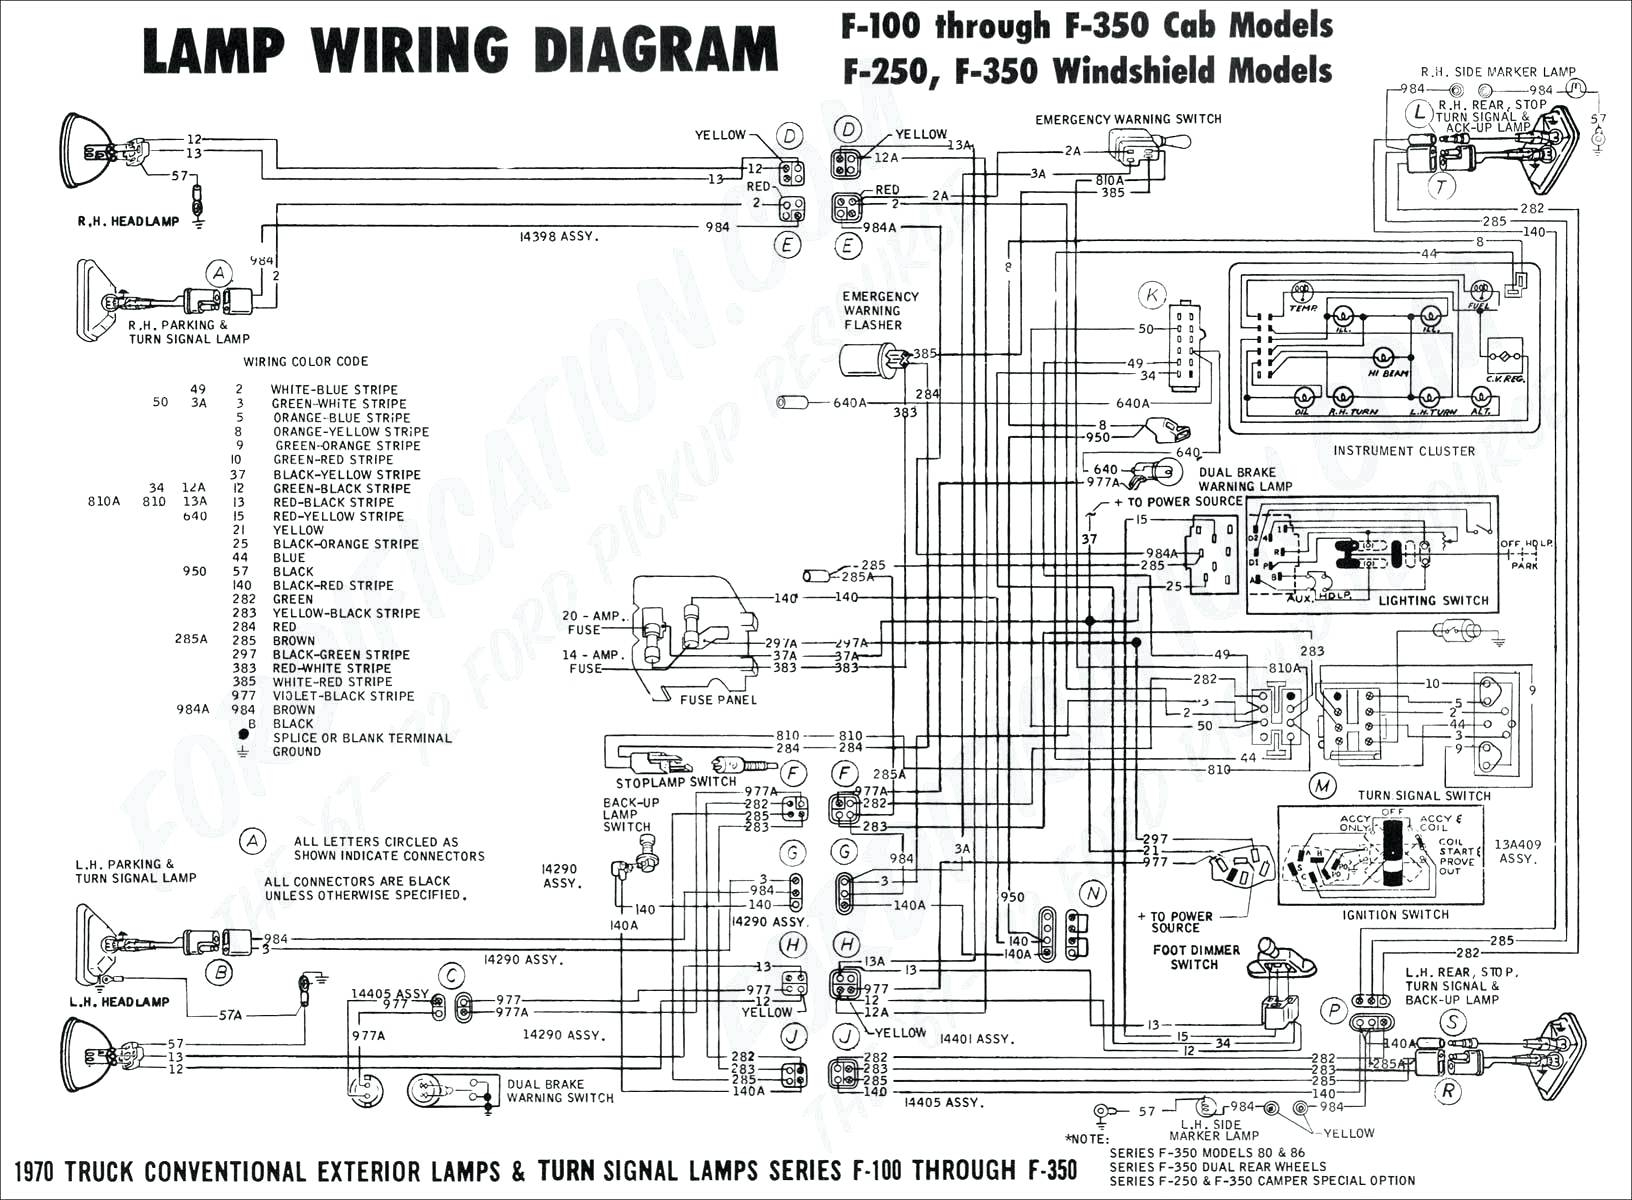 2003 dodge ram 2500 trailer wiring diagram download 2003 dodge 2500 hemi wiring schematic